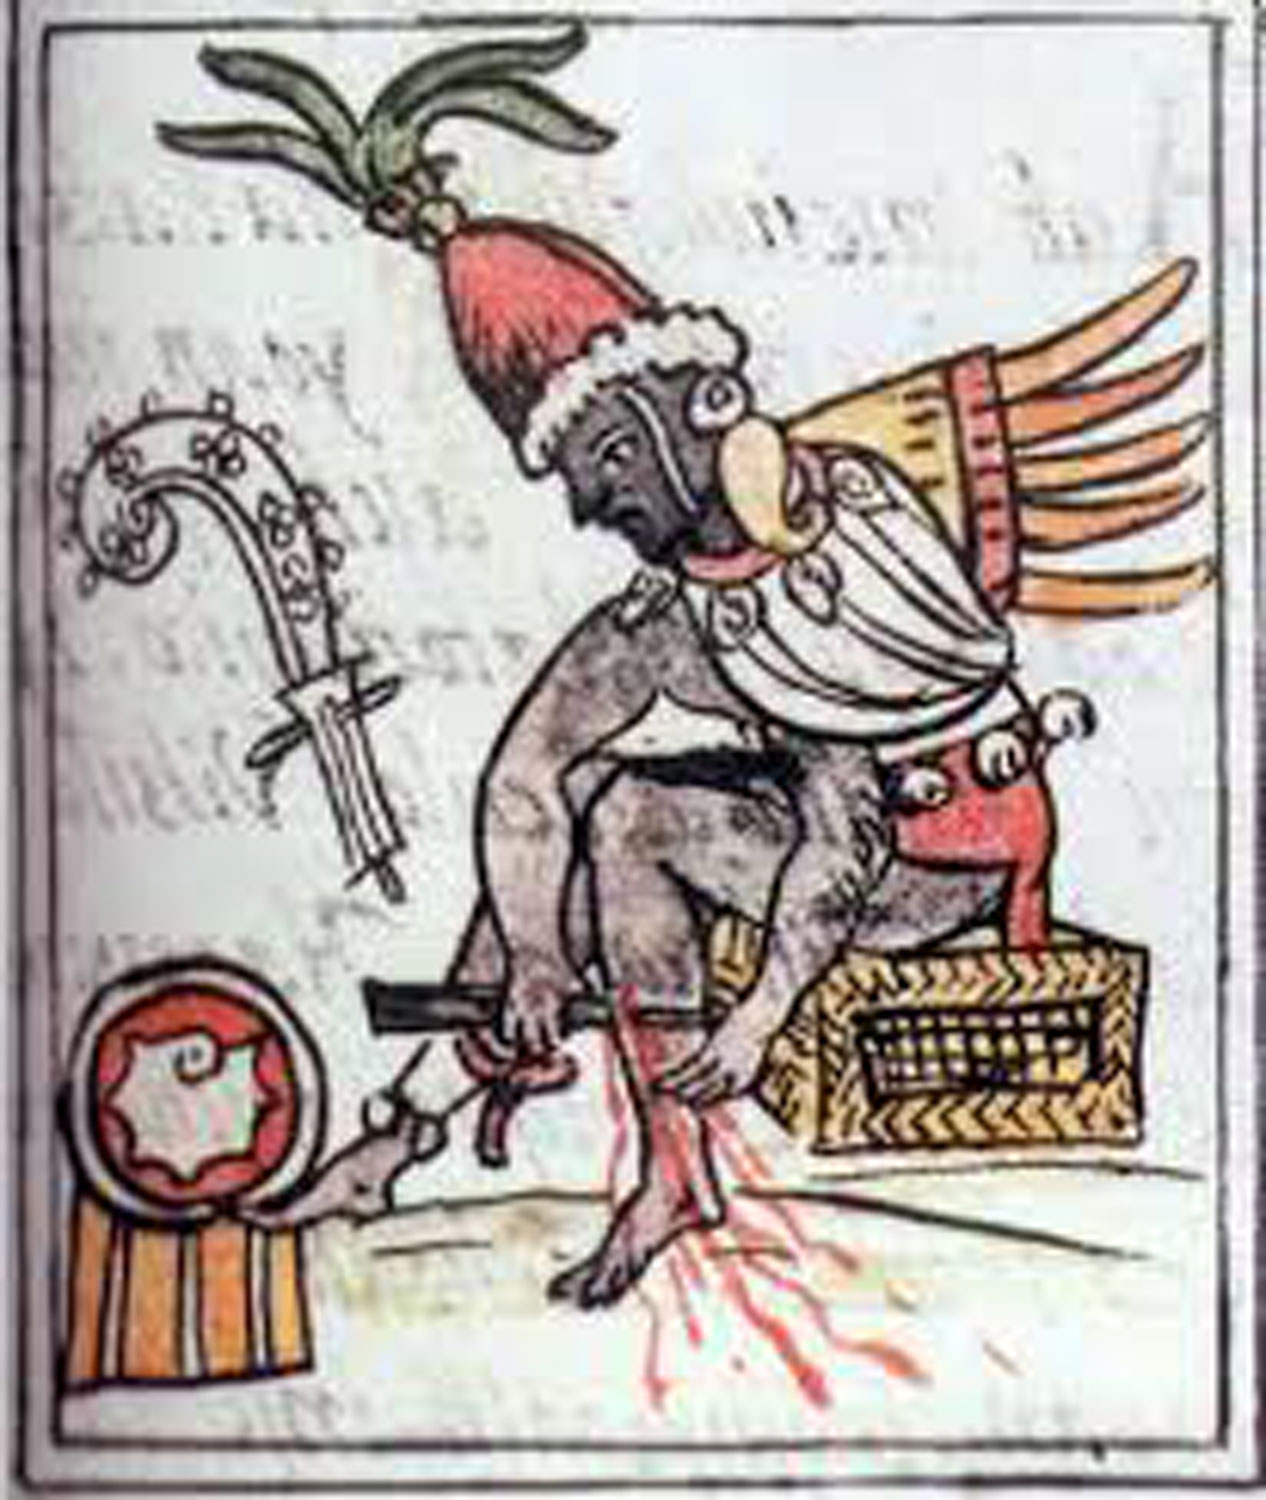 Ce Acatl Topiltzin, the famous priest letting his own blood in self-sacrifice (to give blood to the gods); from  Florentine Codex